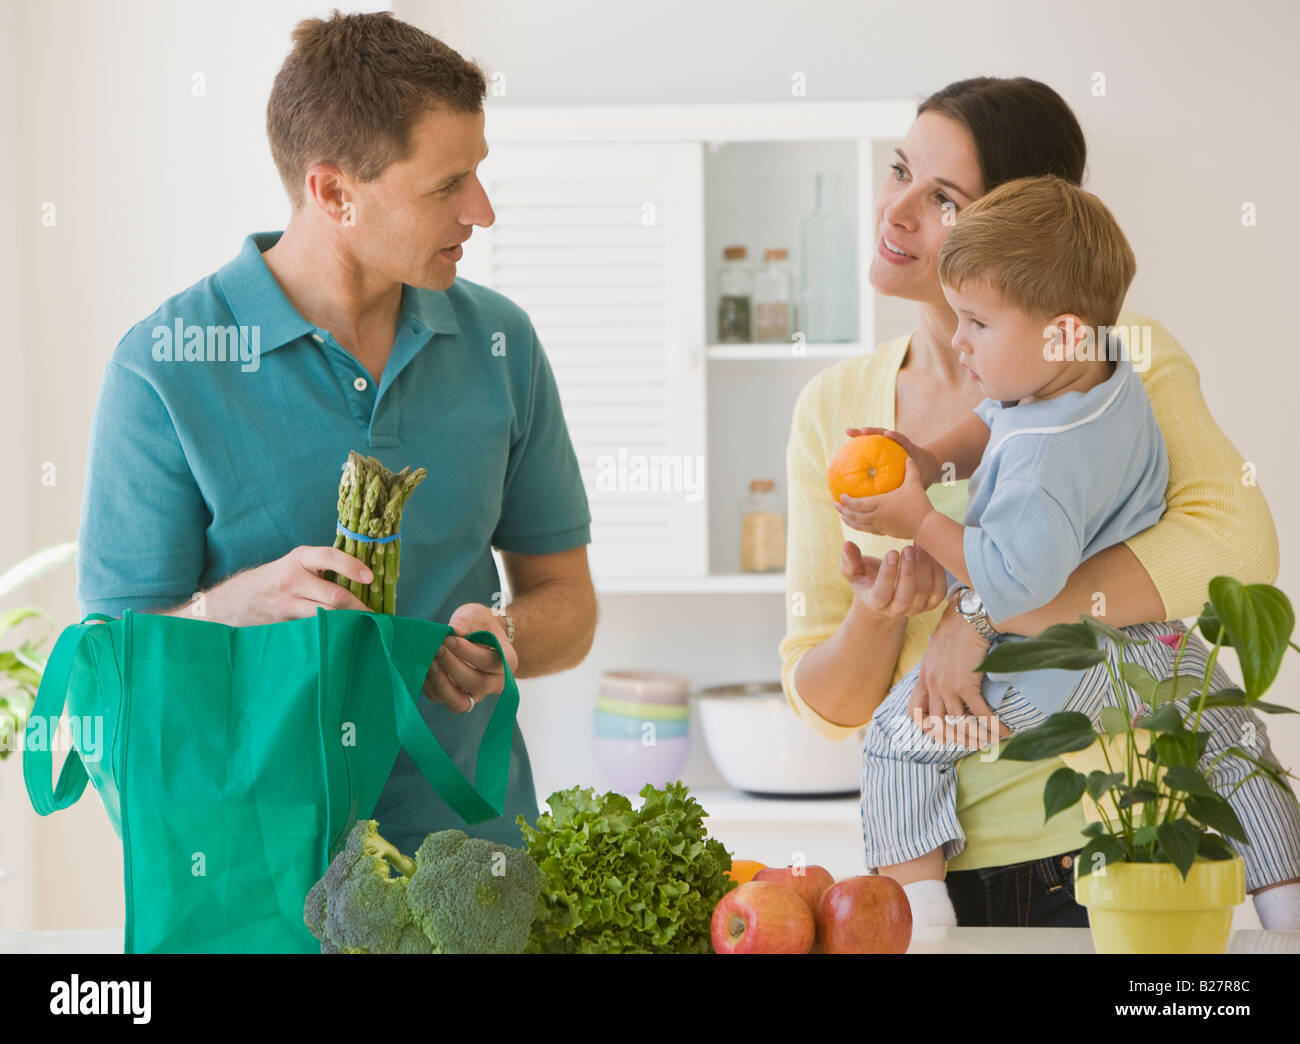 Family unpacking groceries - Stock Image